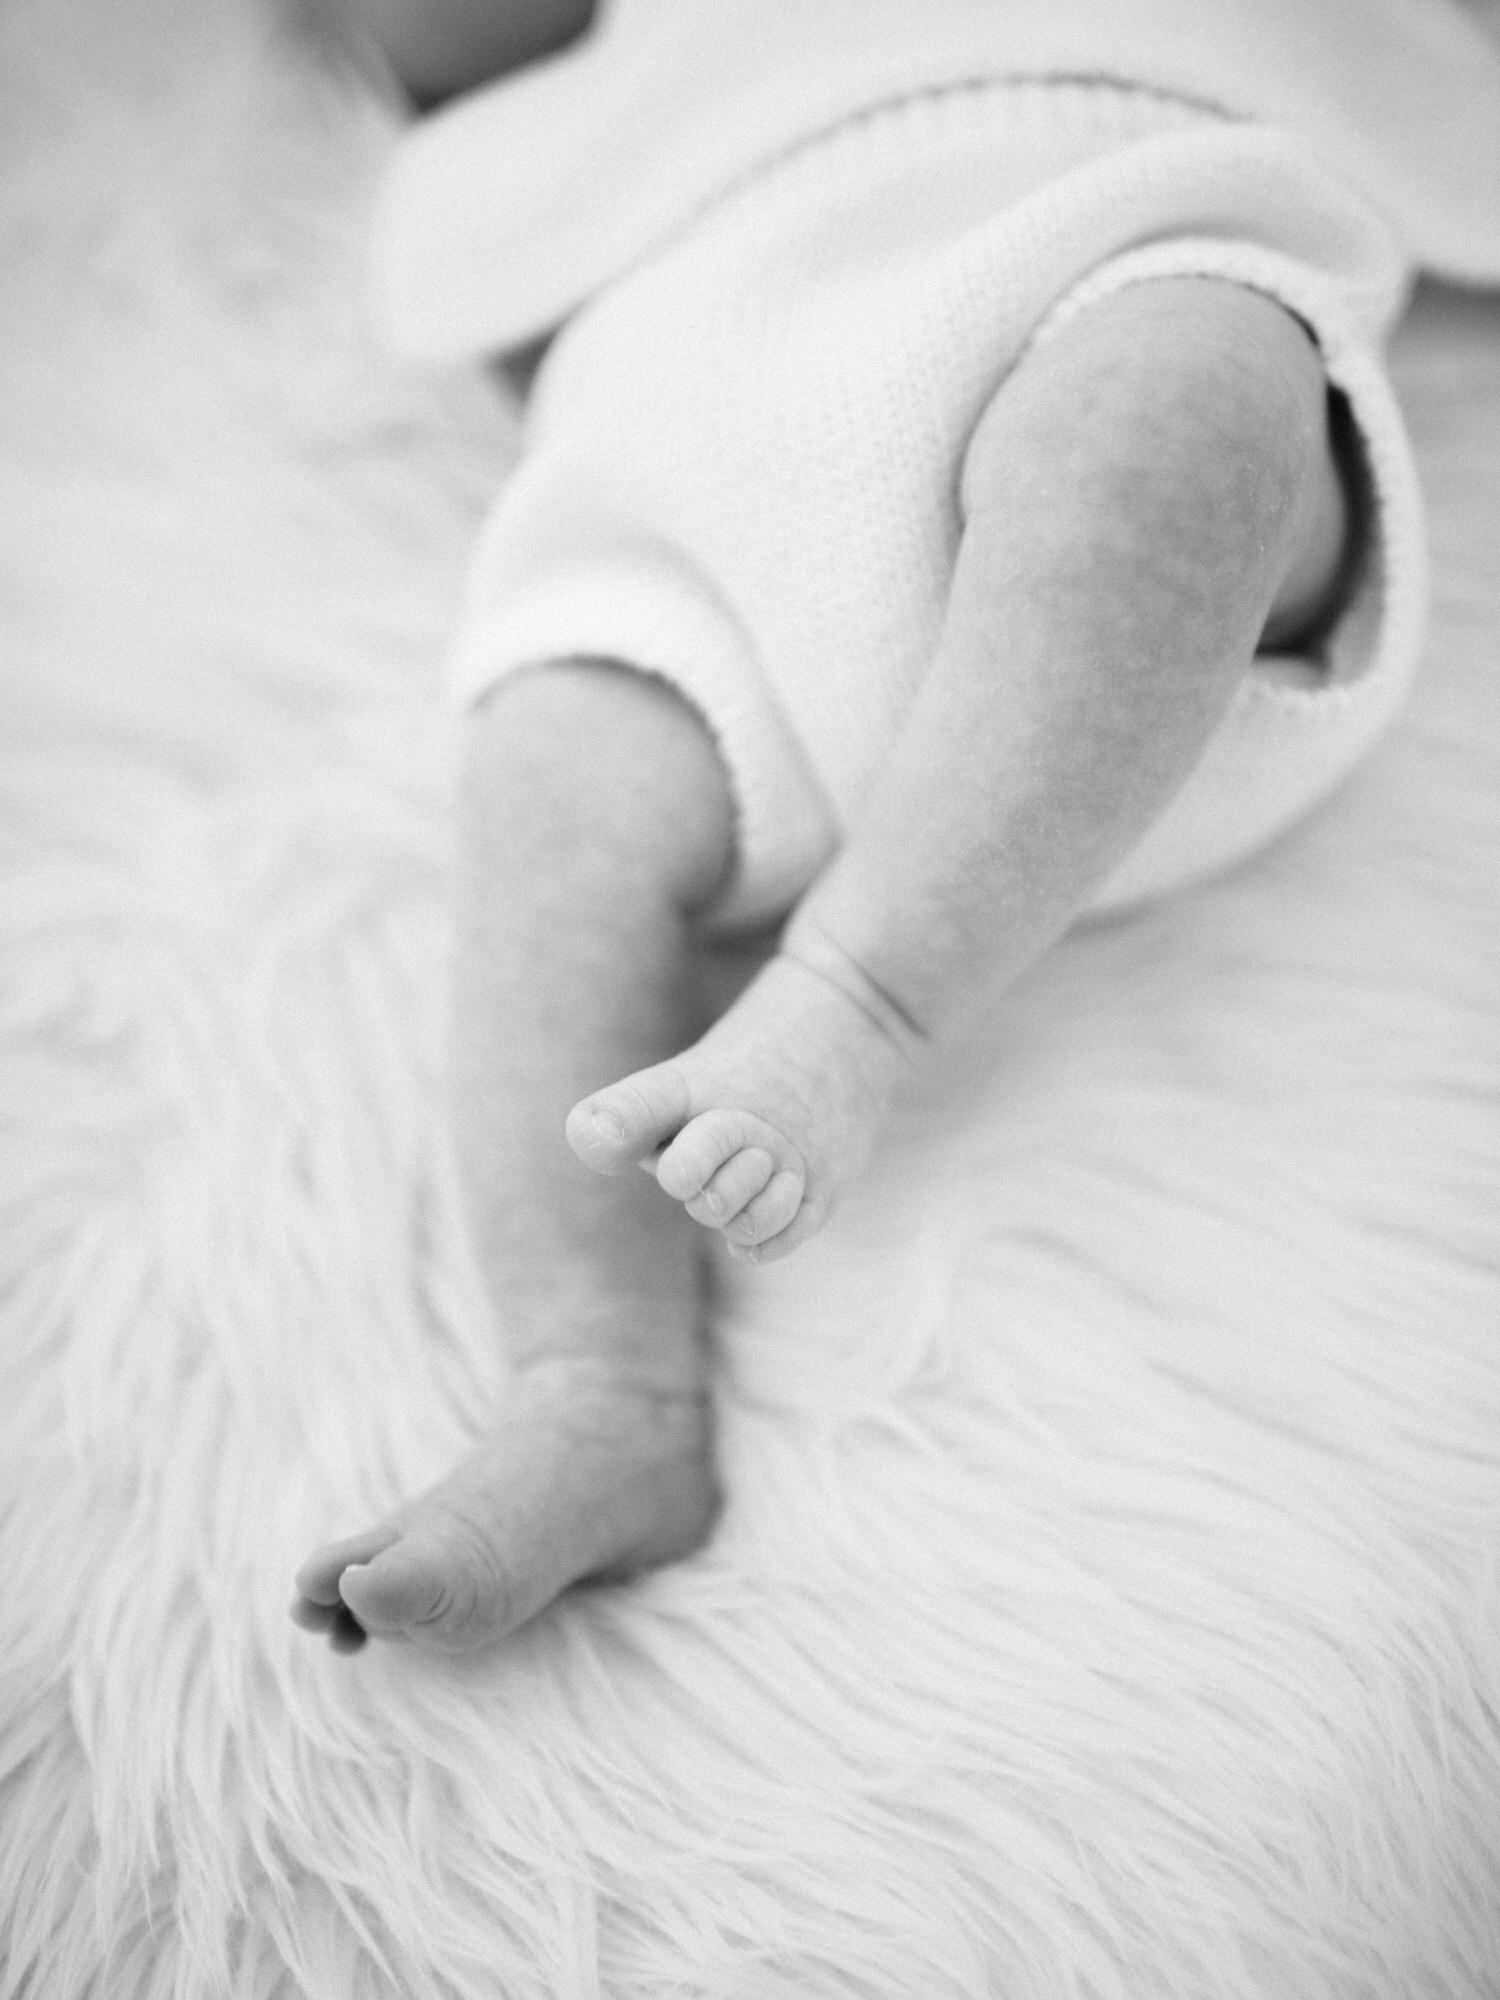 close up of baby feet, in black and white